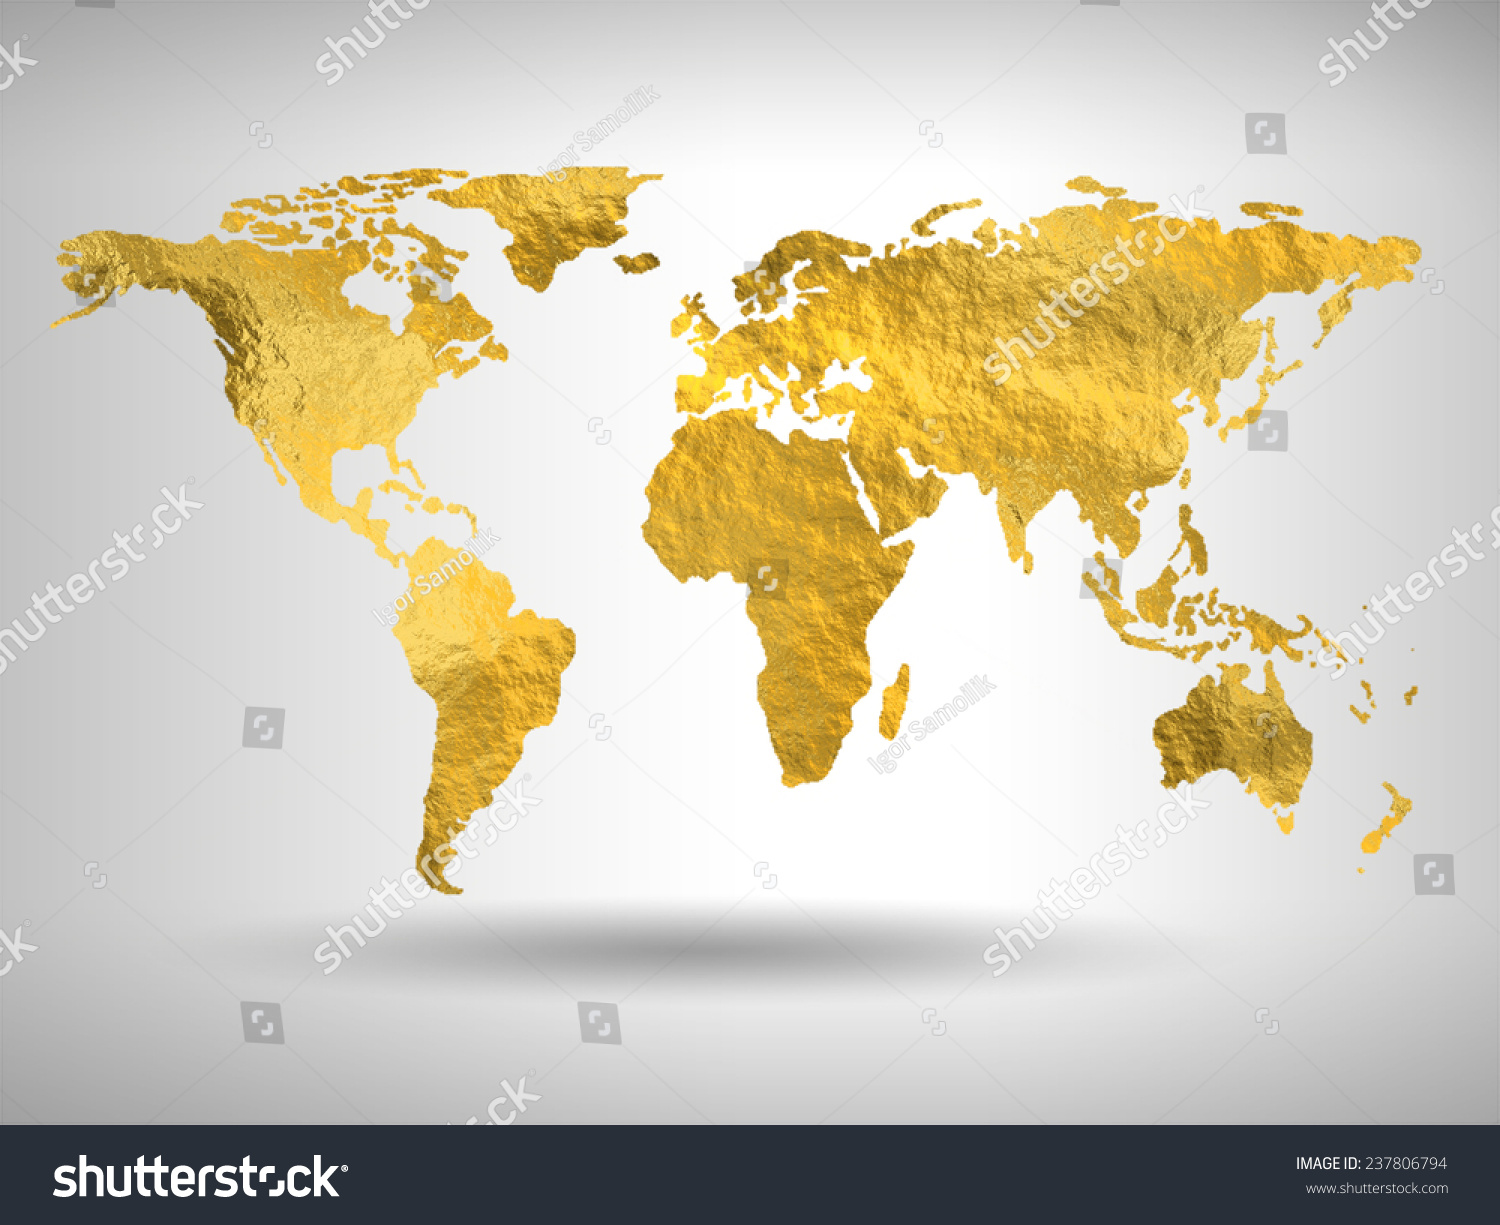 Gold world map stock illustration 237806794 shutterstock gold world map gumiabroncs Image collections